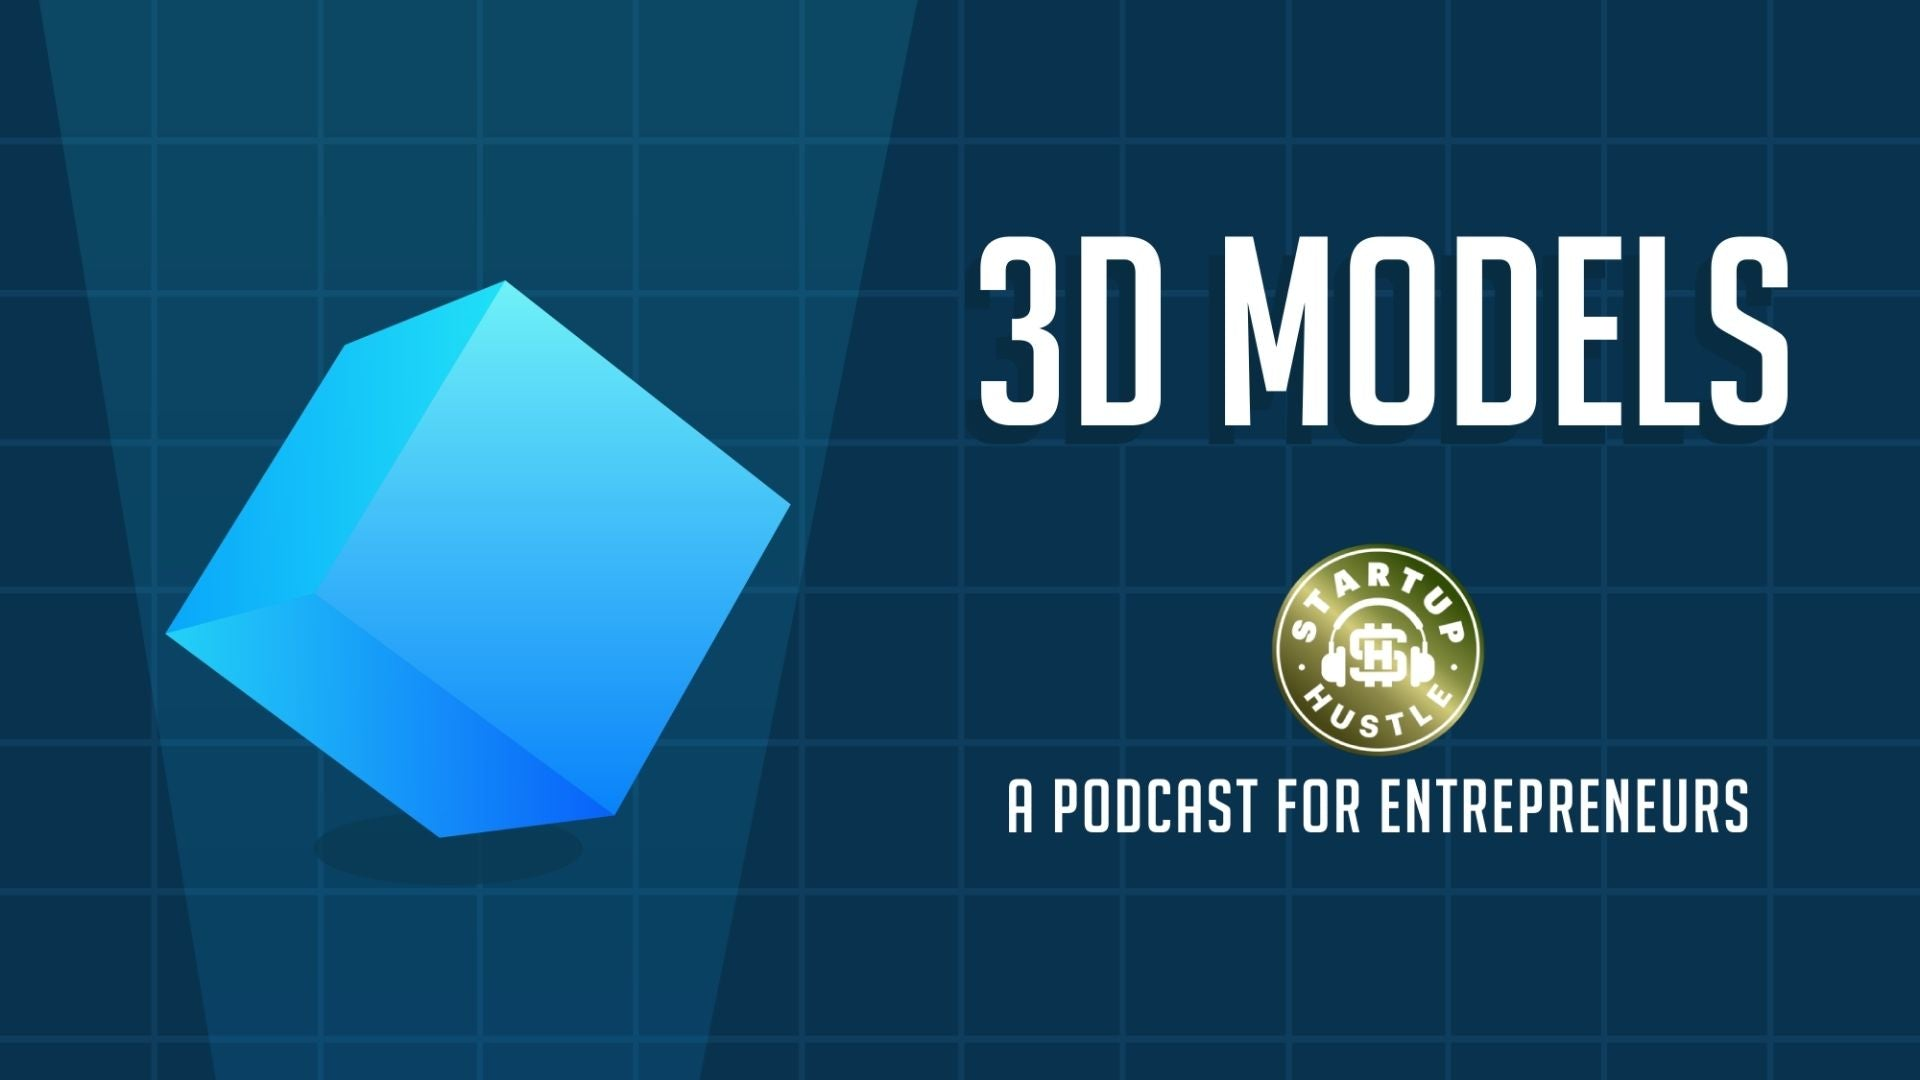 Start Up Hustle Podcast Discusses 3D Models For eCommerce